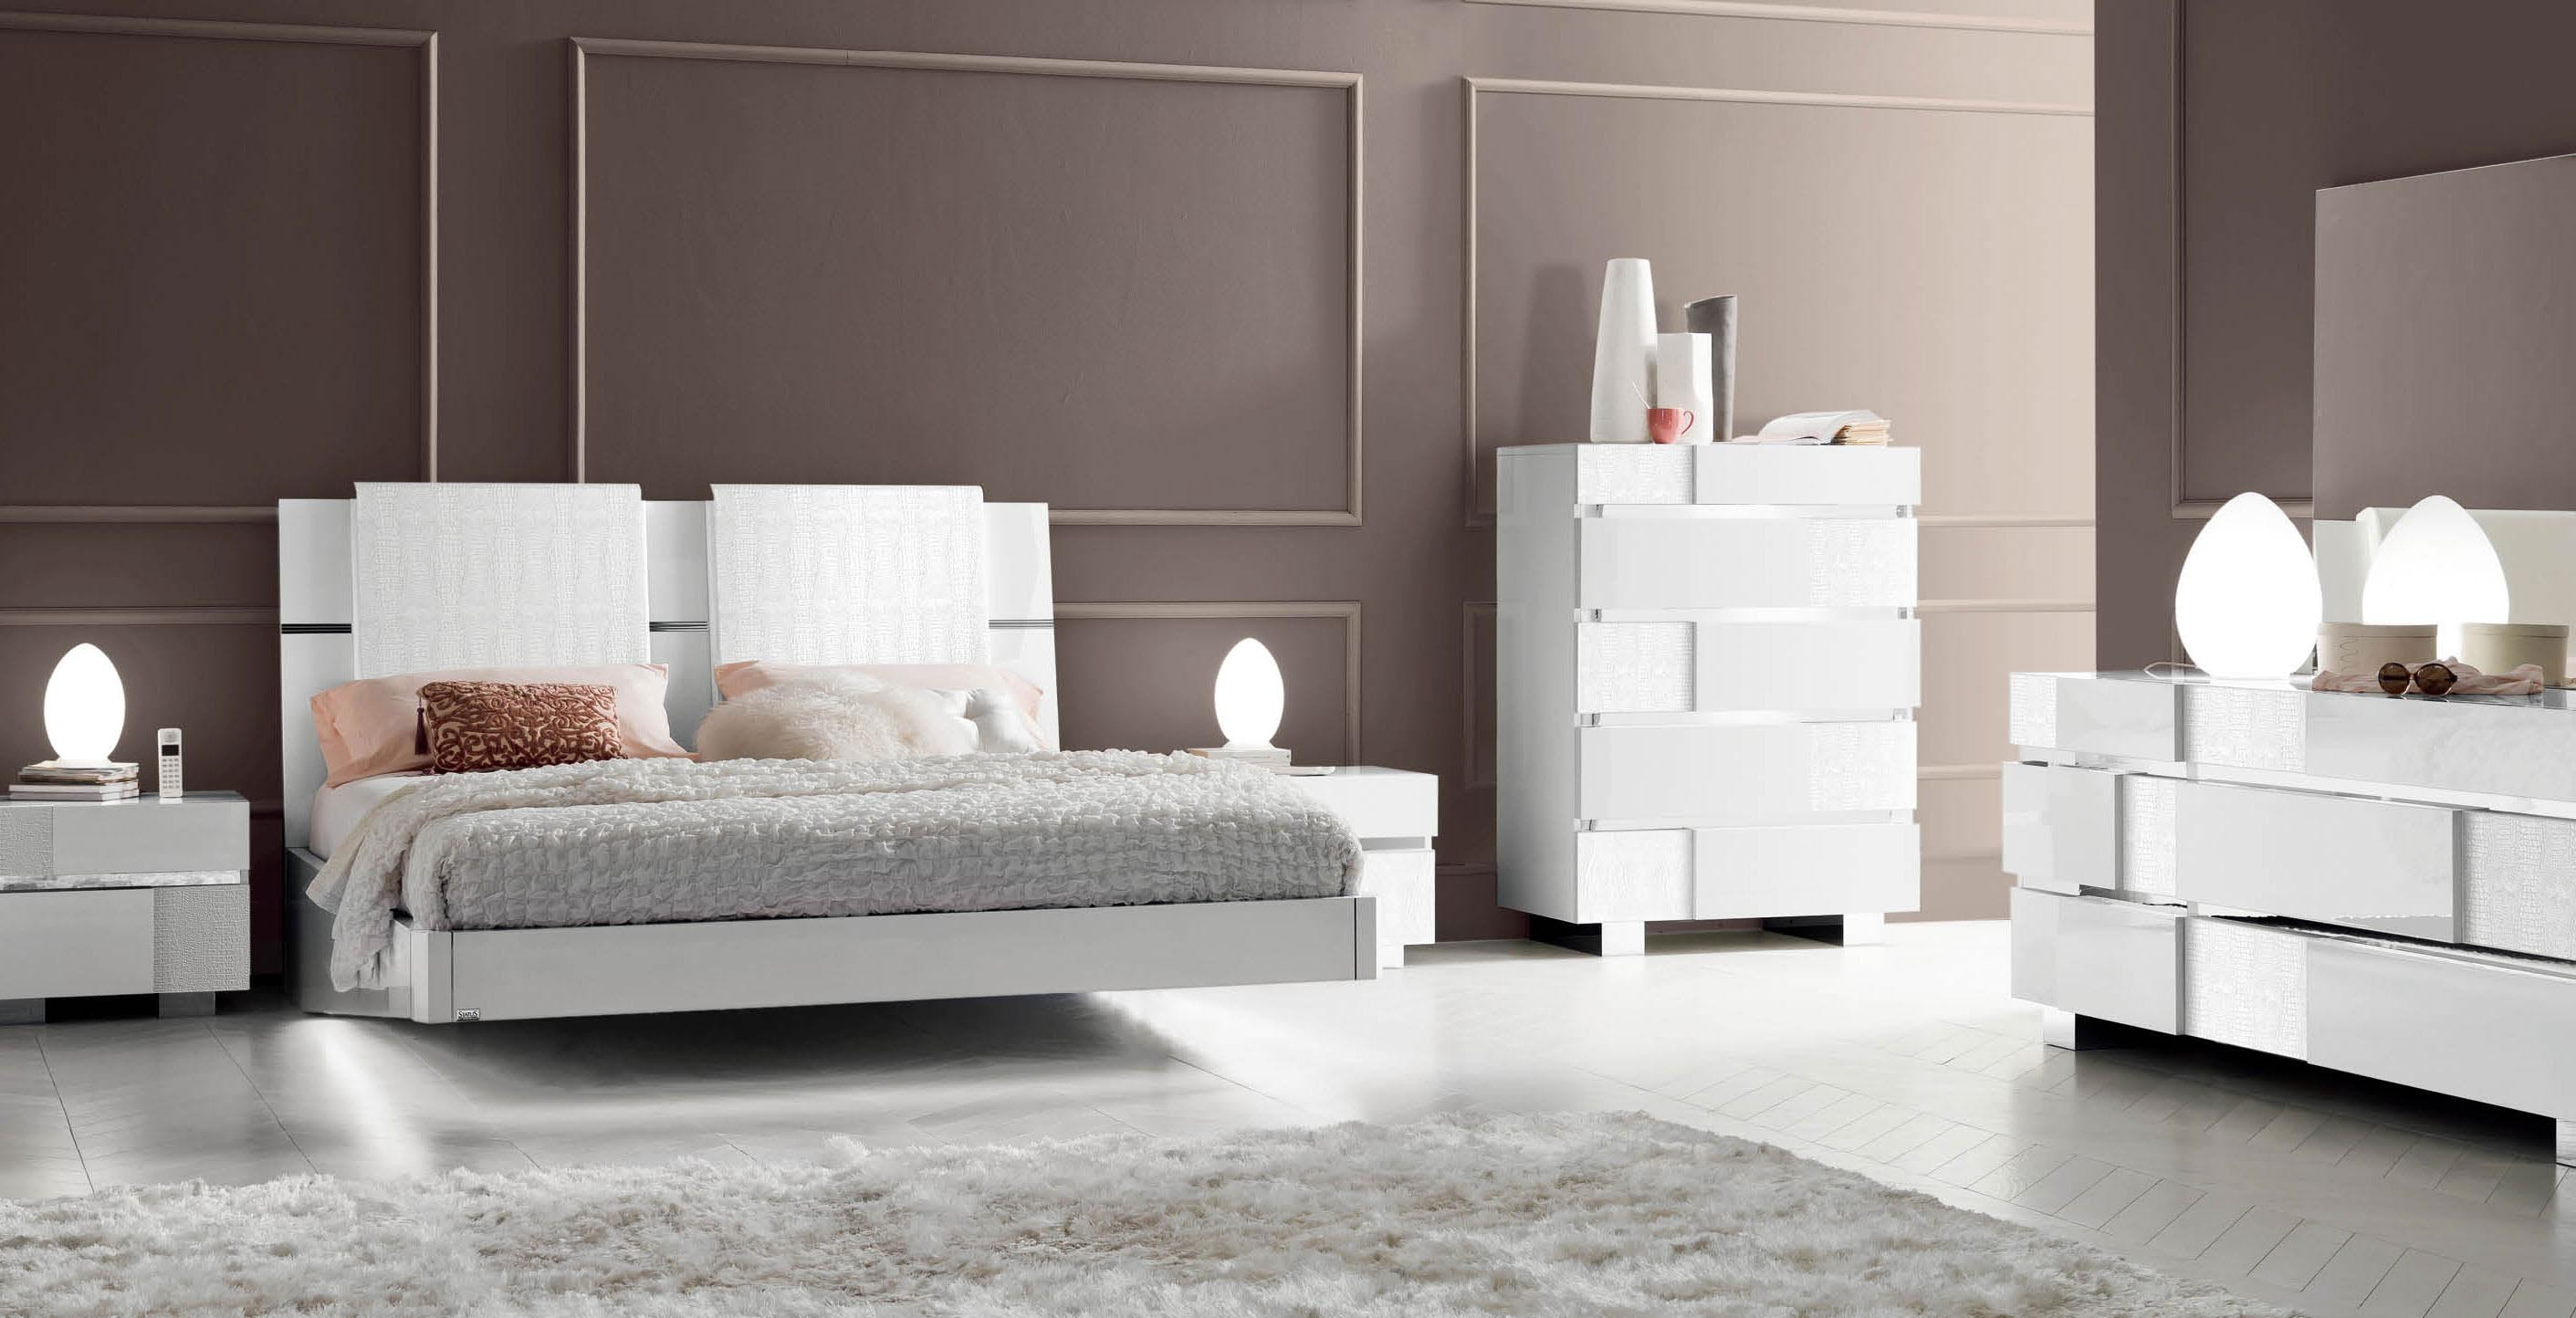 Caprice white modern italian bedroom set n star modern for M s bedroom furniture uk